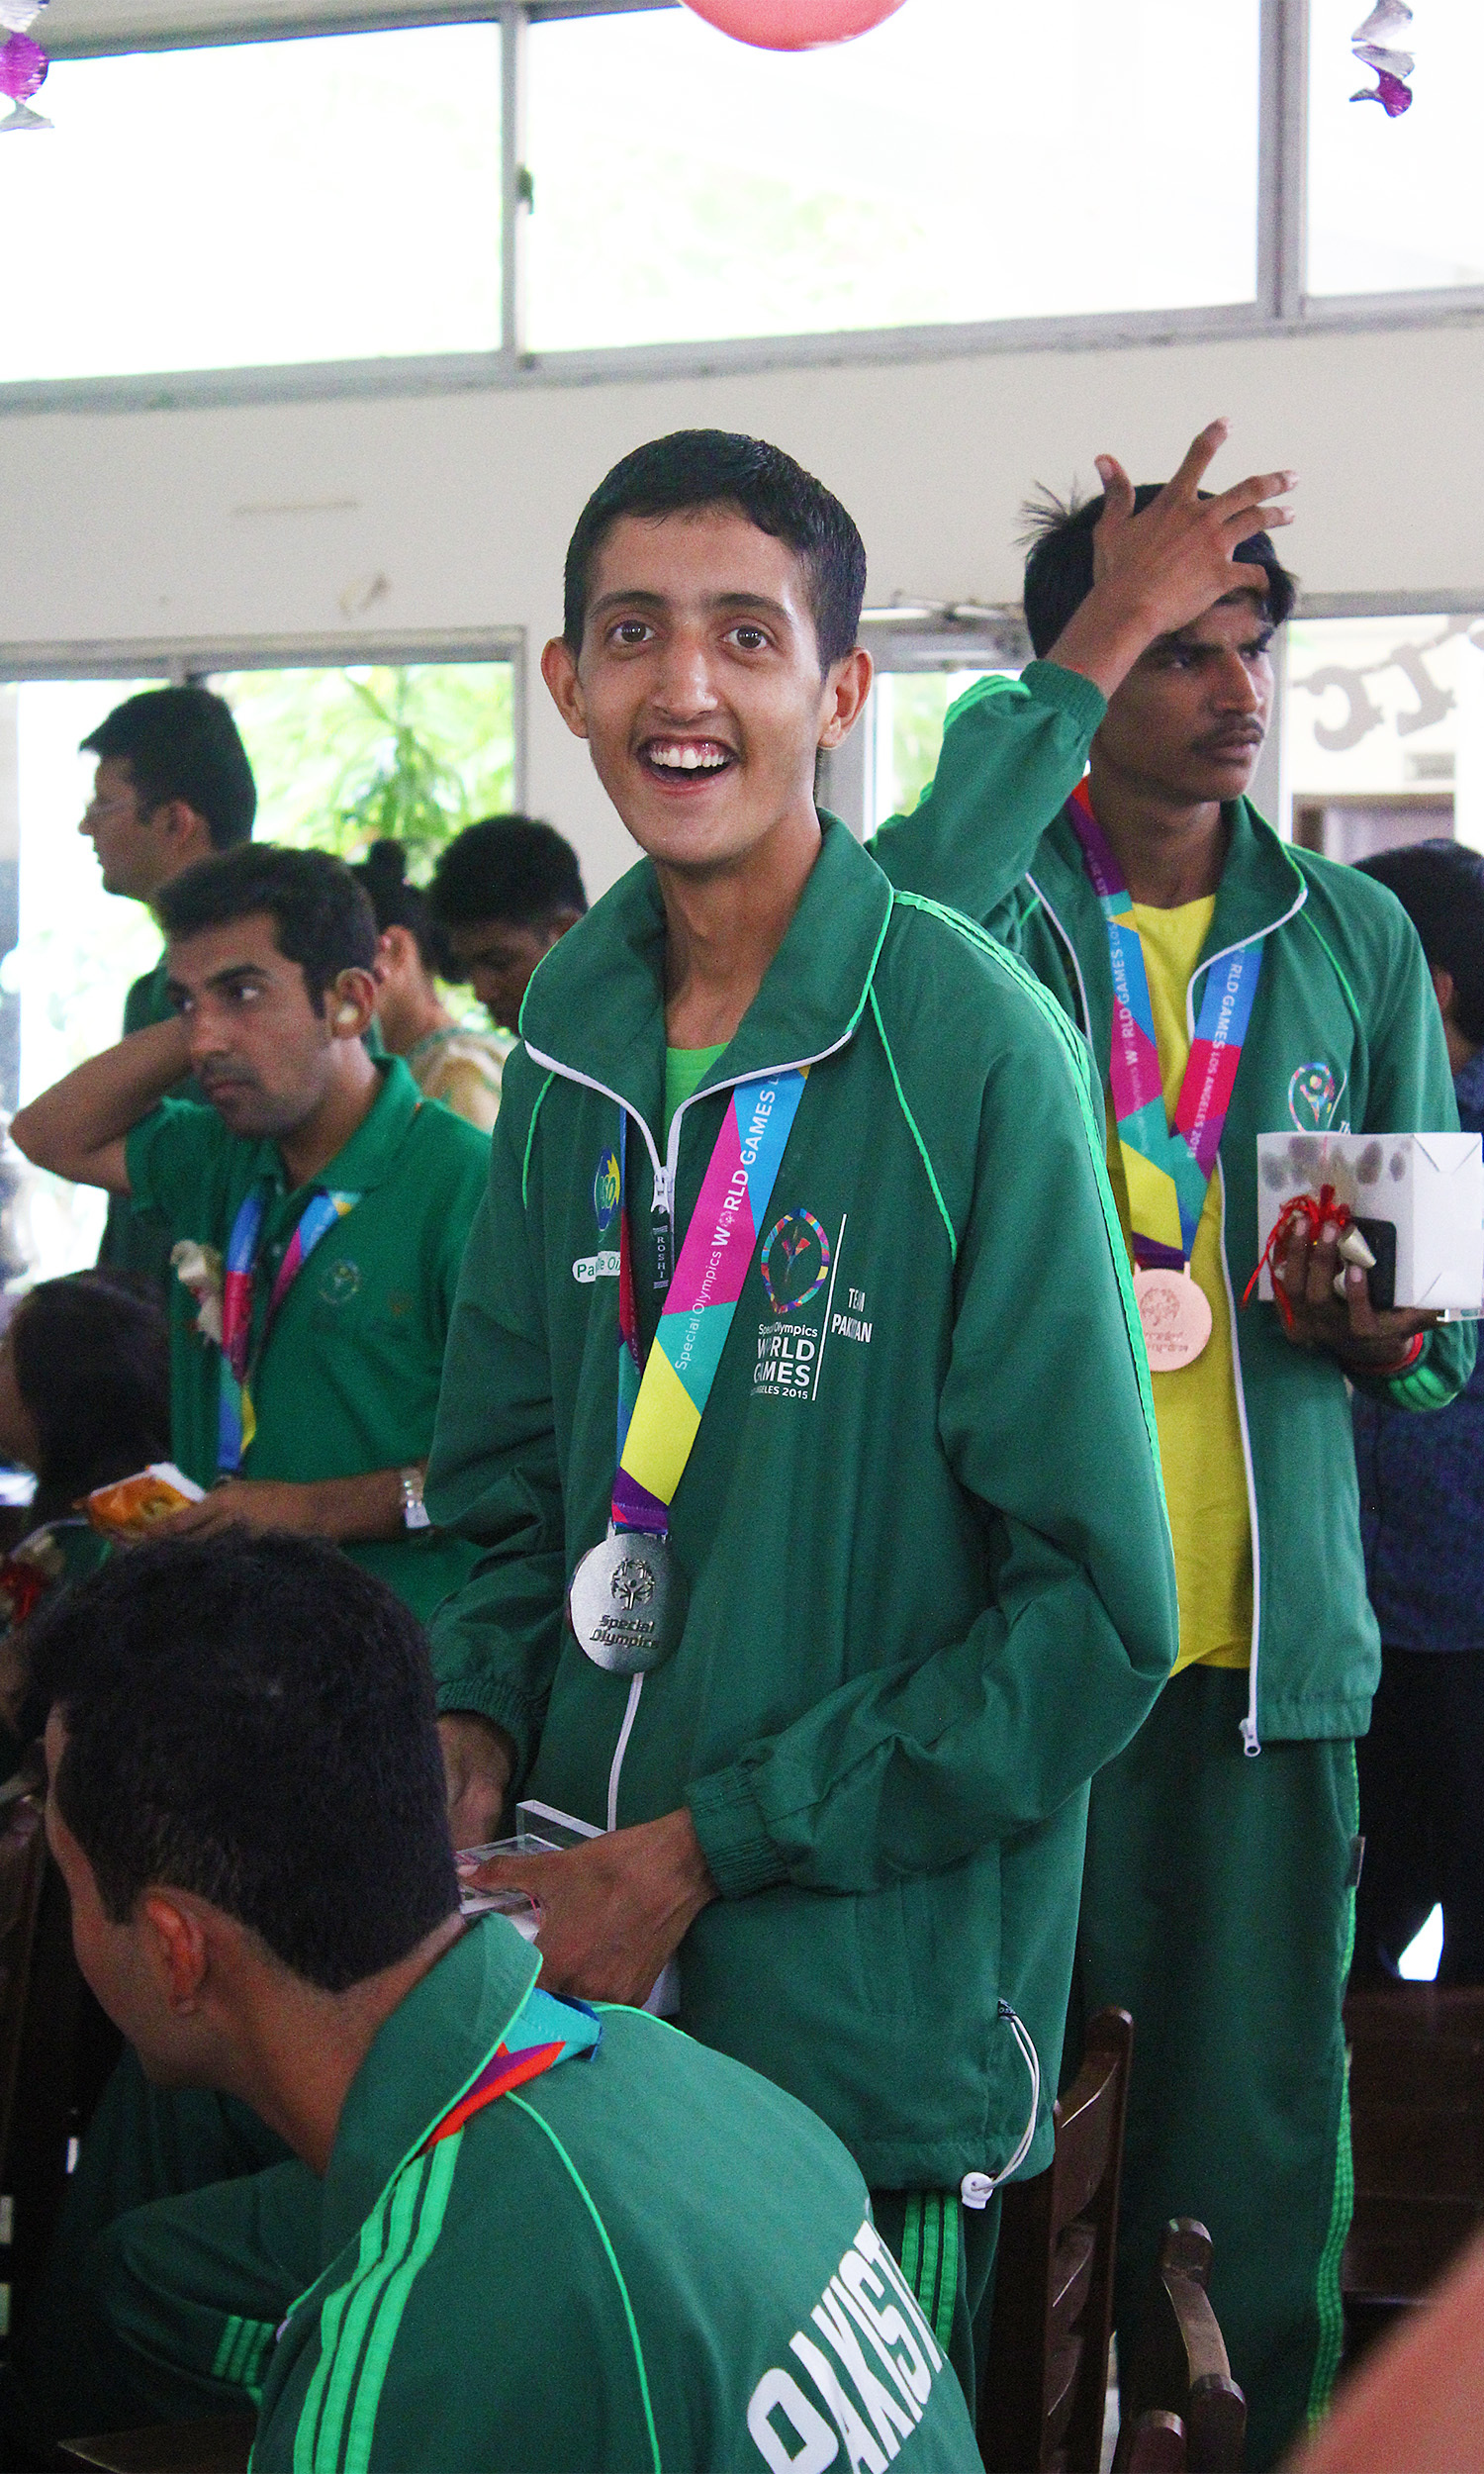 Ahsan Anwer won gold in tennis doubles and a bronze in singles.